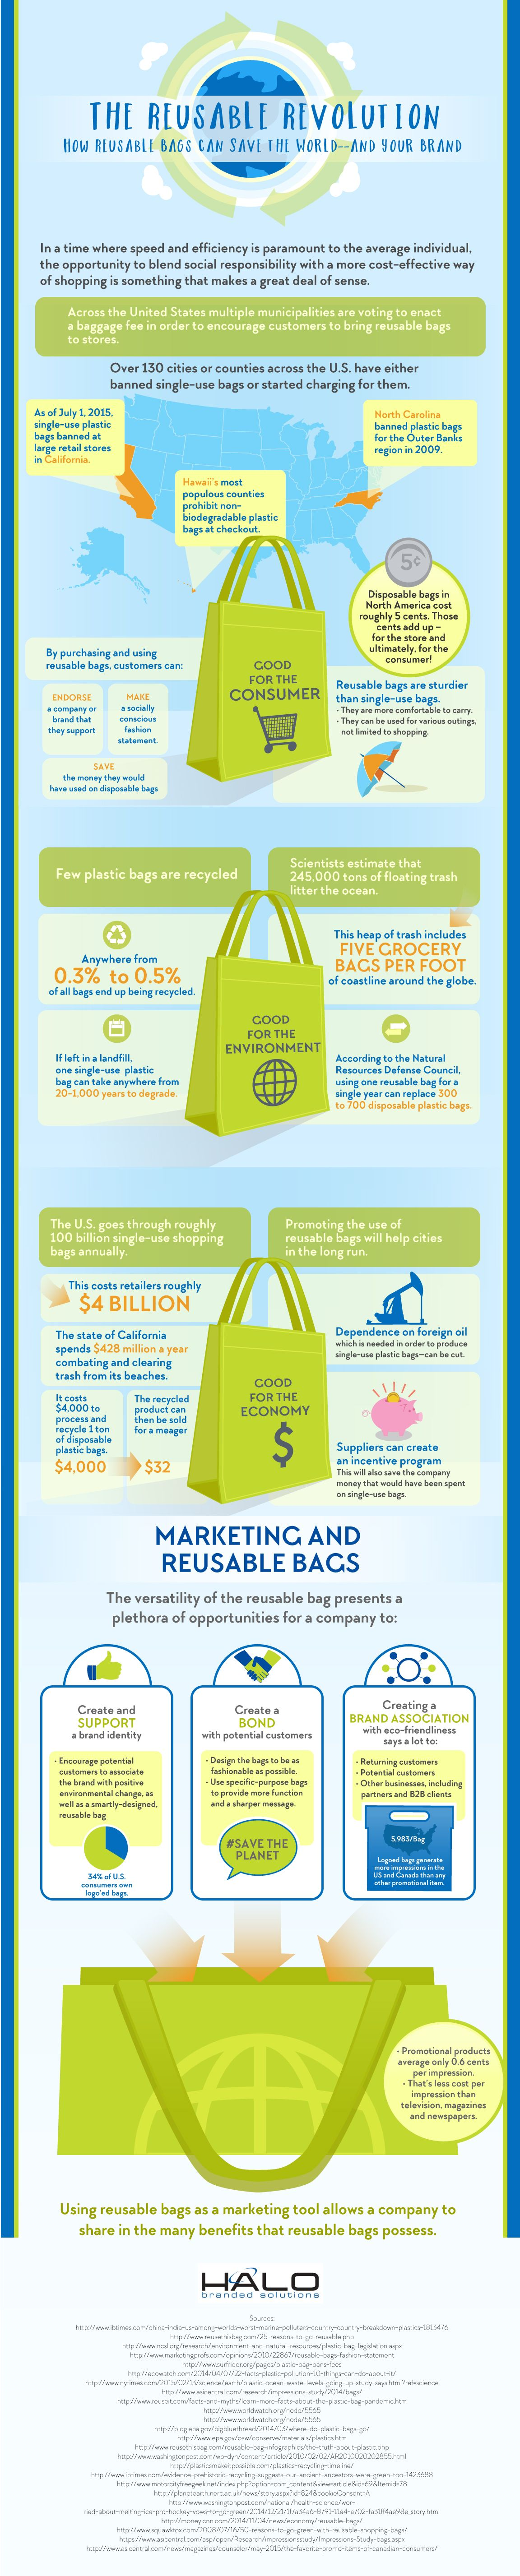 How Reusable Bags Can Save the World and Your Brand